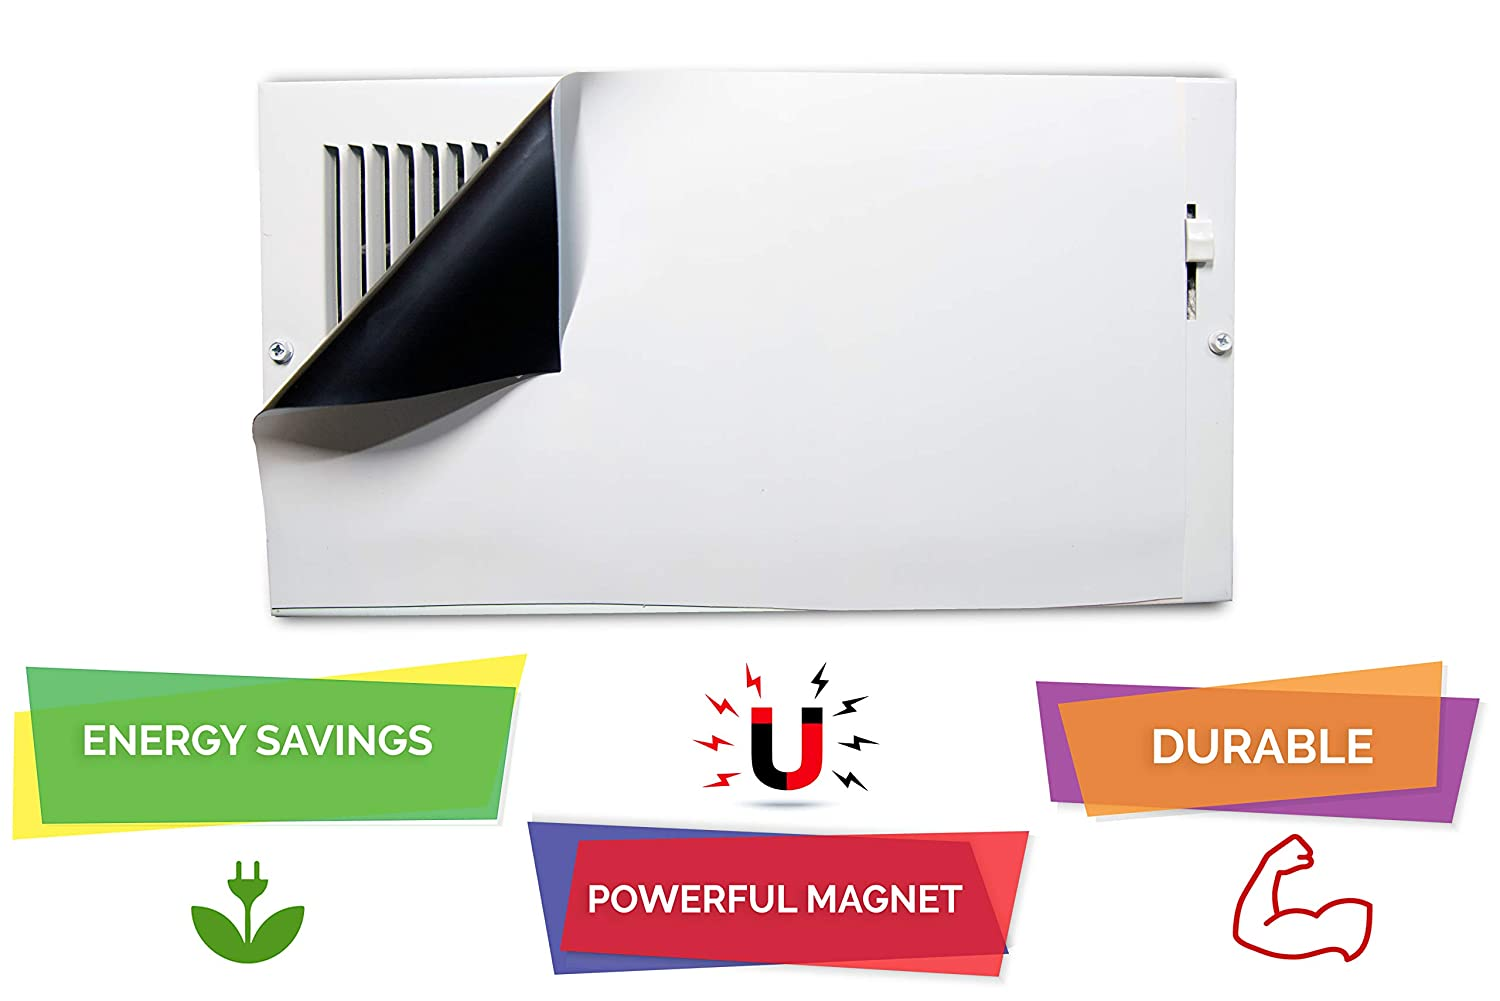 Double Thick To Block Air and Can Be Cut Down To Smaller Size Not For Ceiling Vents High Strength Magnetic Vent Cover For Wall and Floor Air Vents 8.5/'/' x 15/'/' Double Thickness PACK OF 4